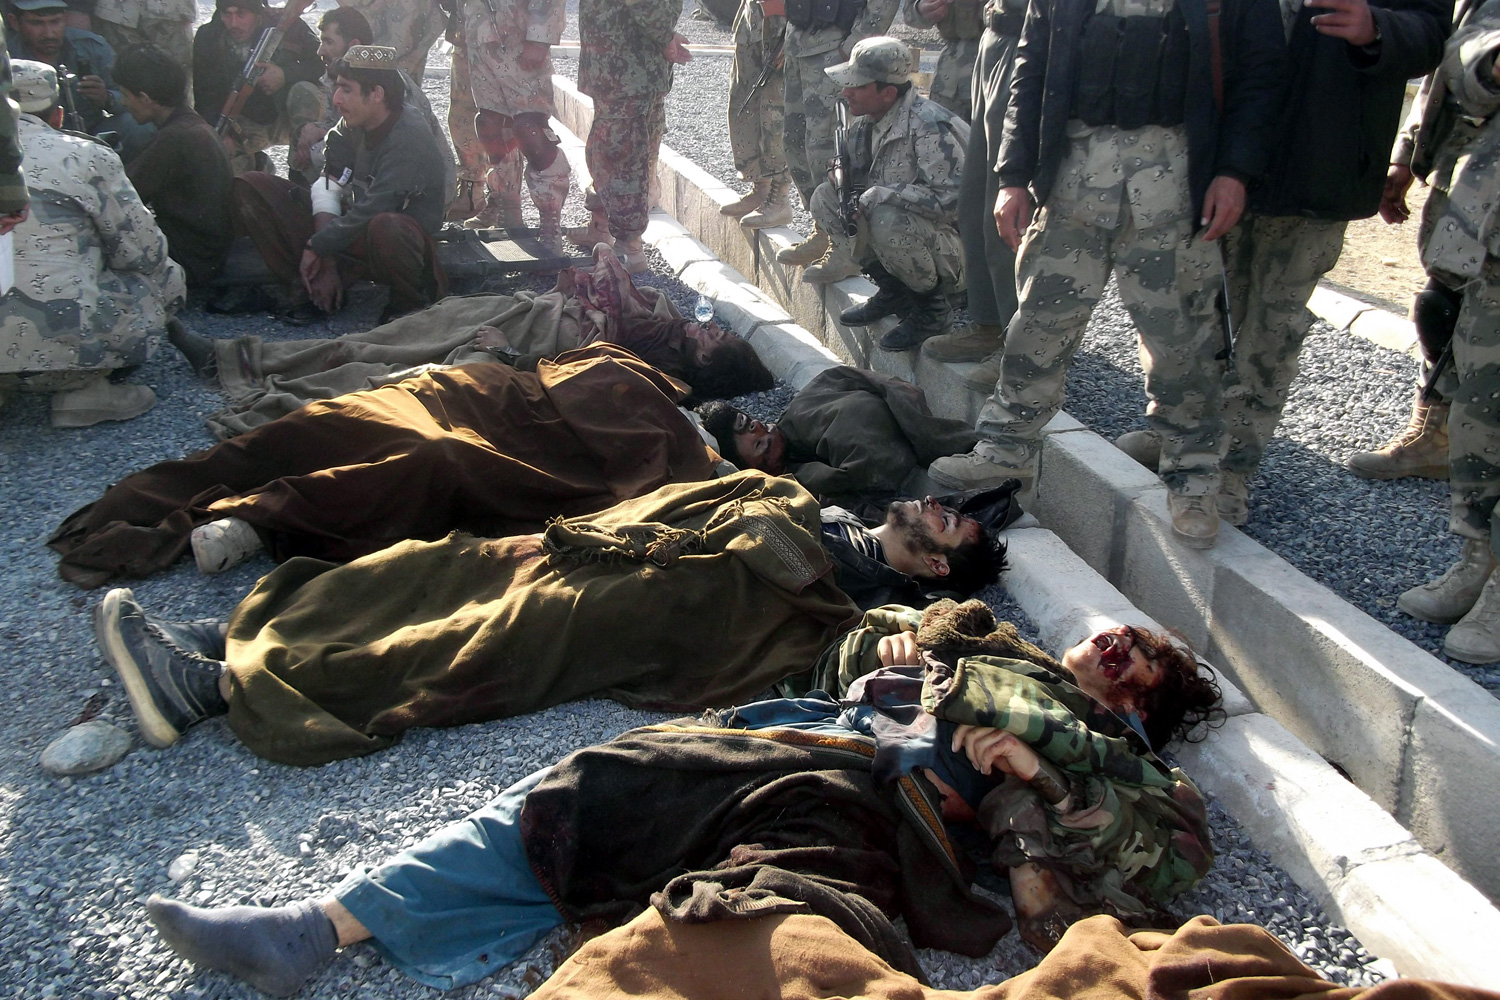 Feb. 28, 2012. Afghan army soldiers stand besides the bodies of alleged Taliban militants after a gun battle between Taliban and Afghan police after an attack at Afghan police station in Jalalabad province, Afghanistan.